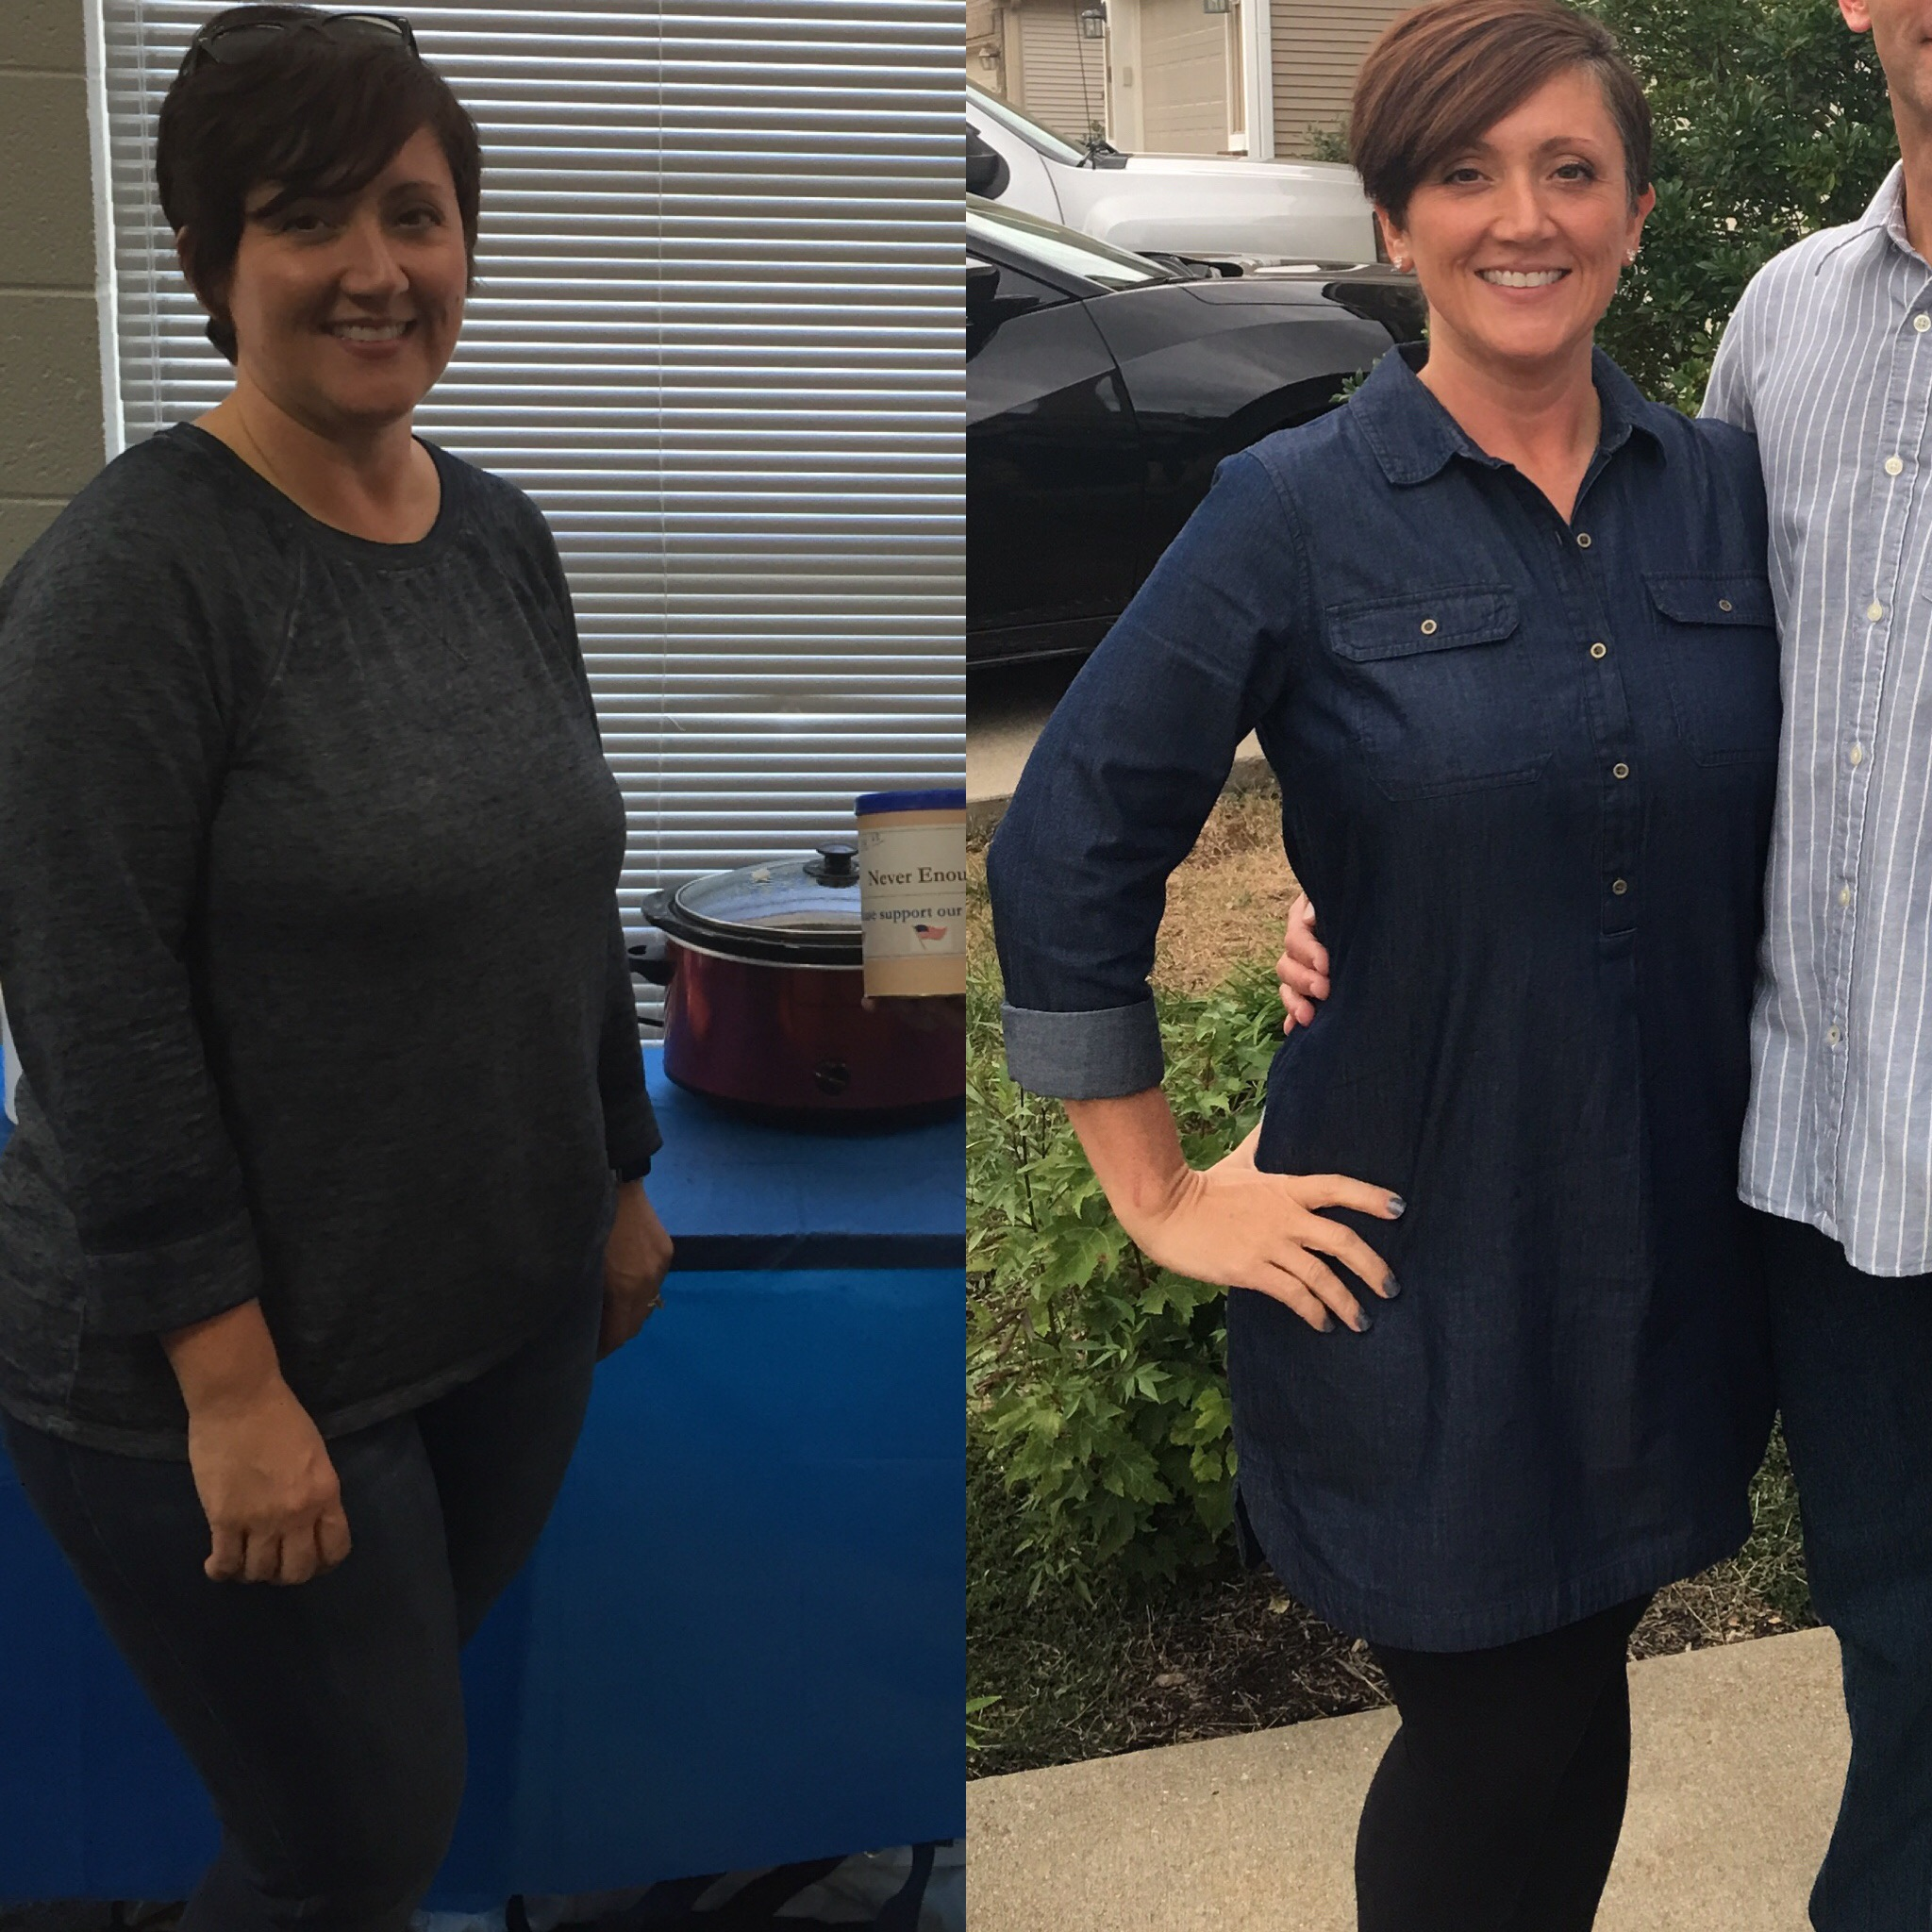 Carol lost 67 pounds! See my before and after weight loss pictures, and read amazing weight loss success stories from real women and their best weight loss diet plans and programs. Motivation to lose weight with walking and inspiration from before and after weightloss pics and photos.